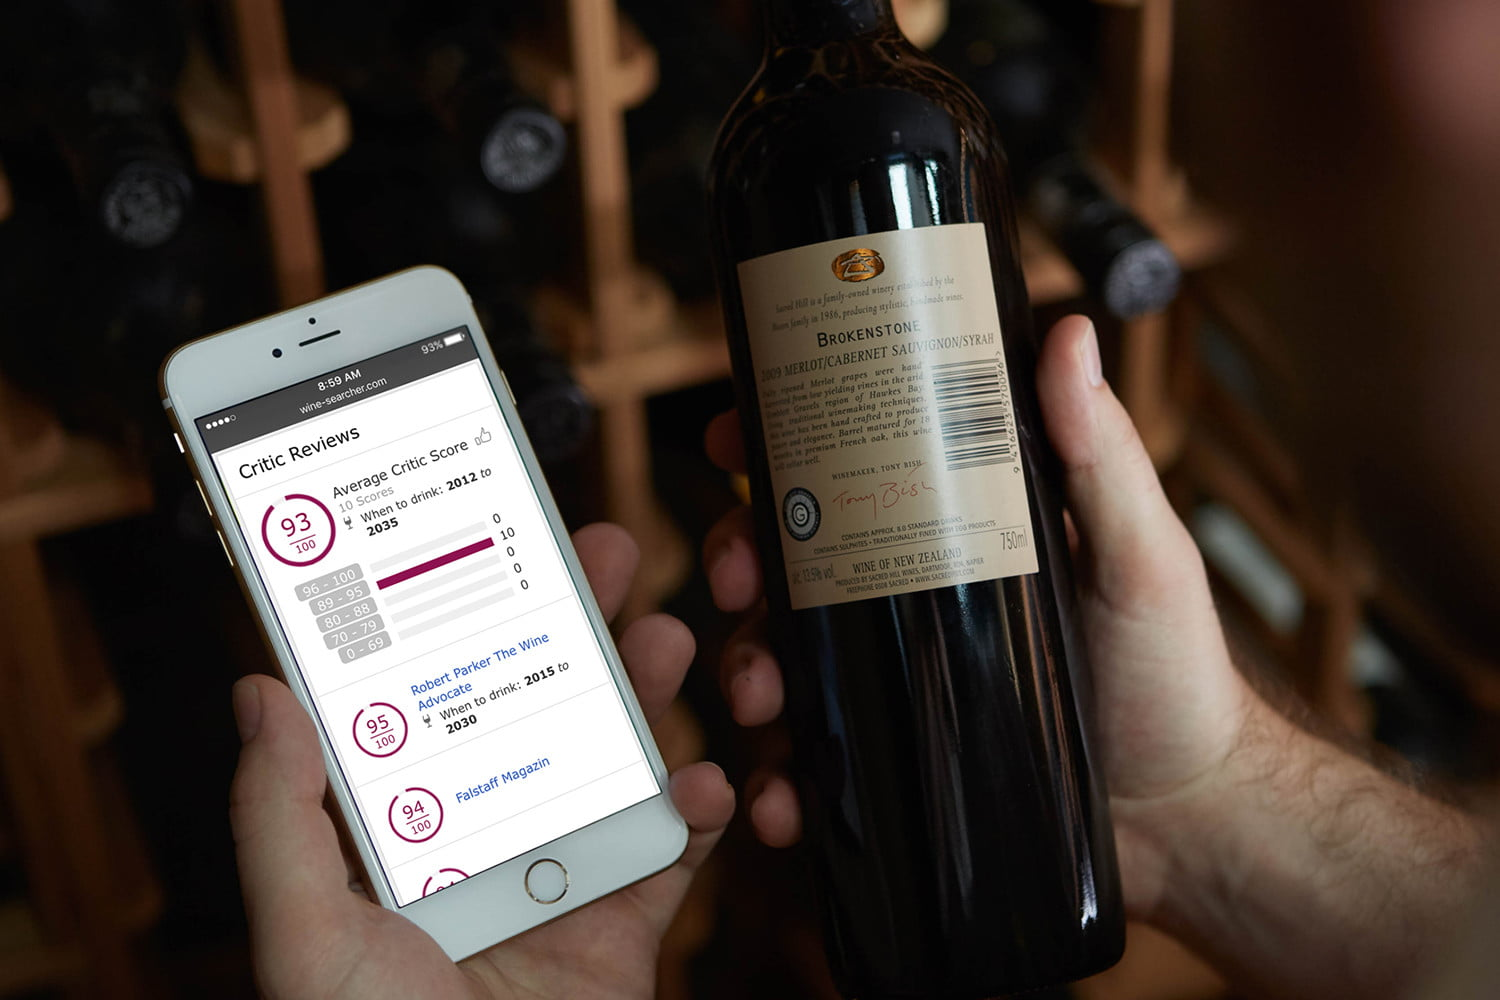 The Best Wine Apps According to a Wine Pro | Digital Trends